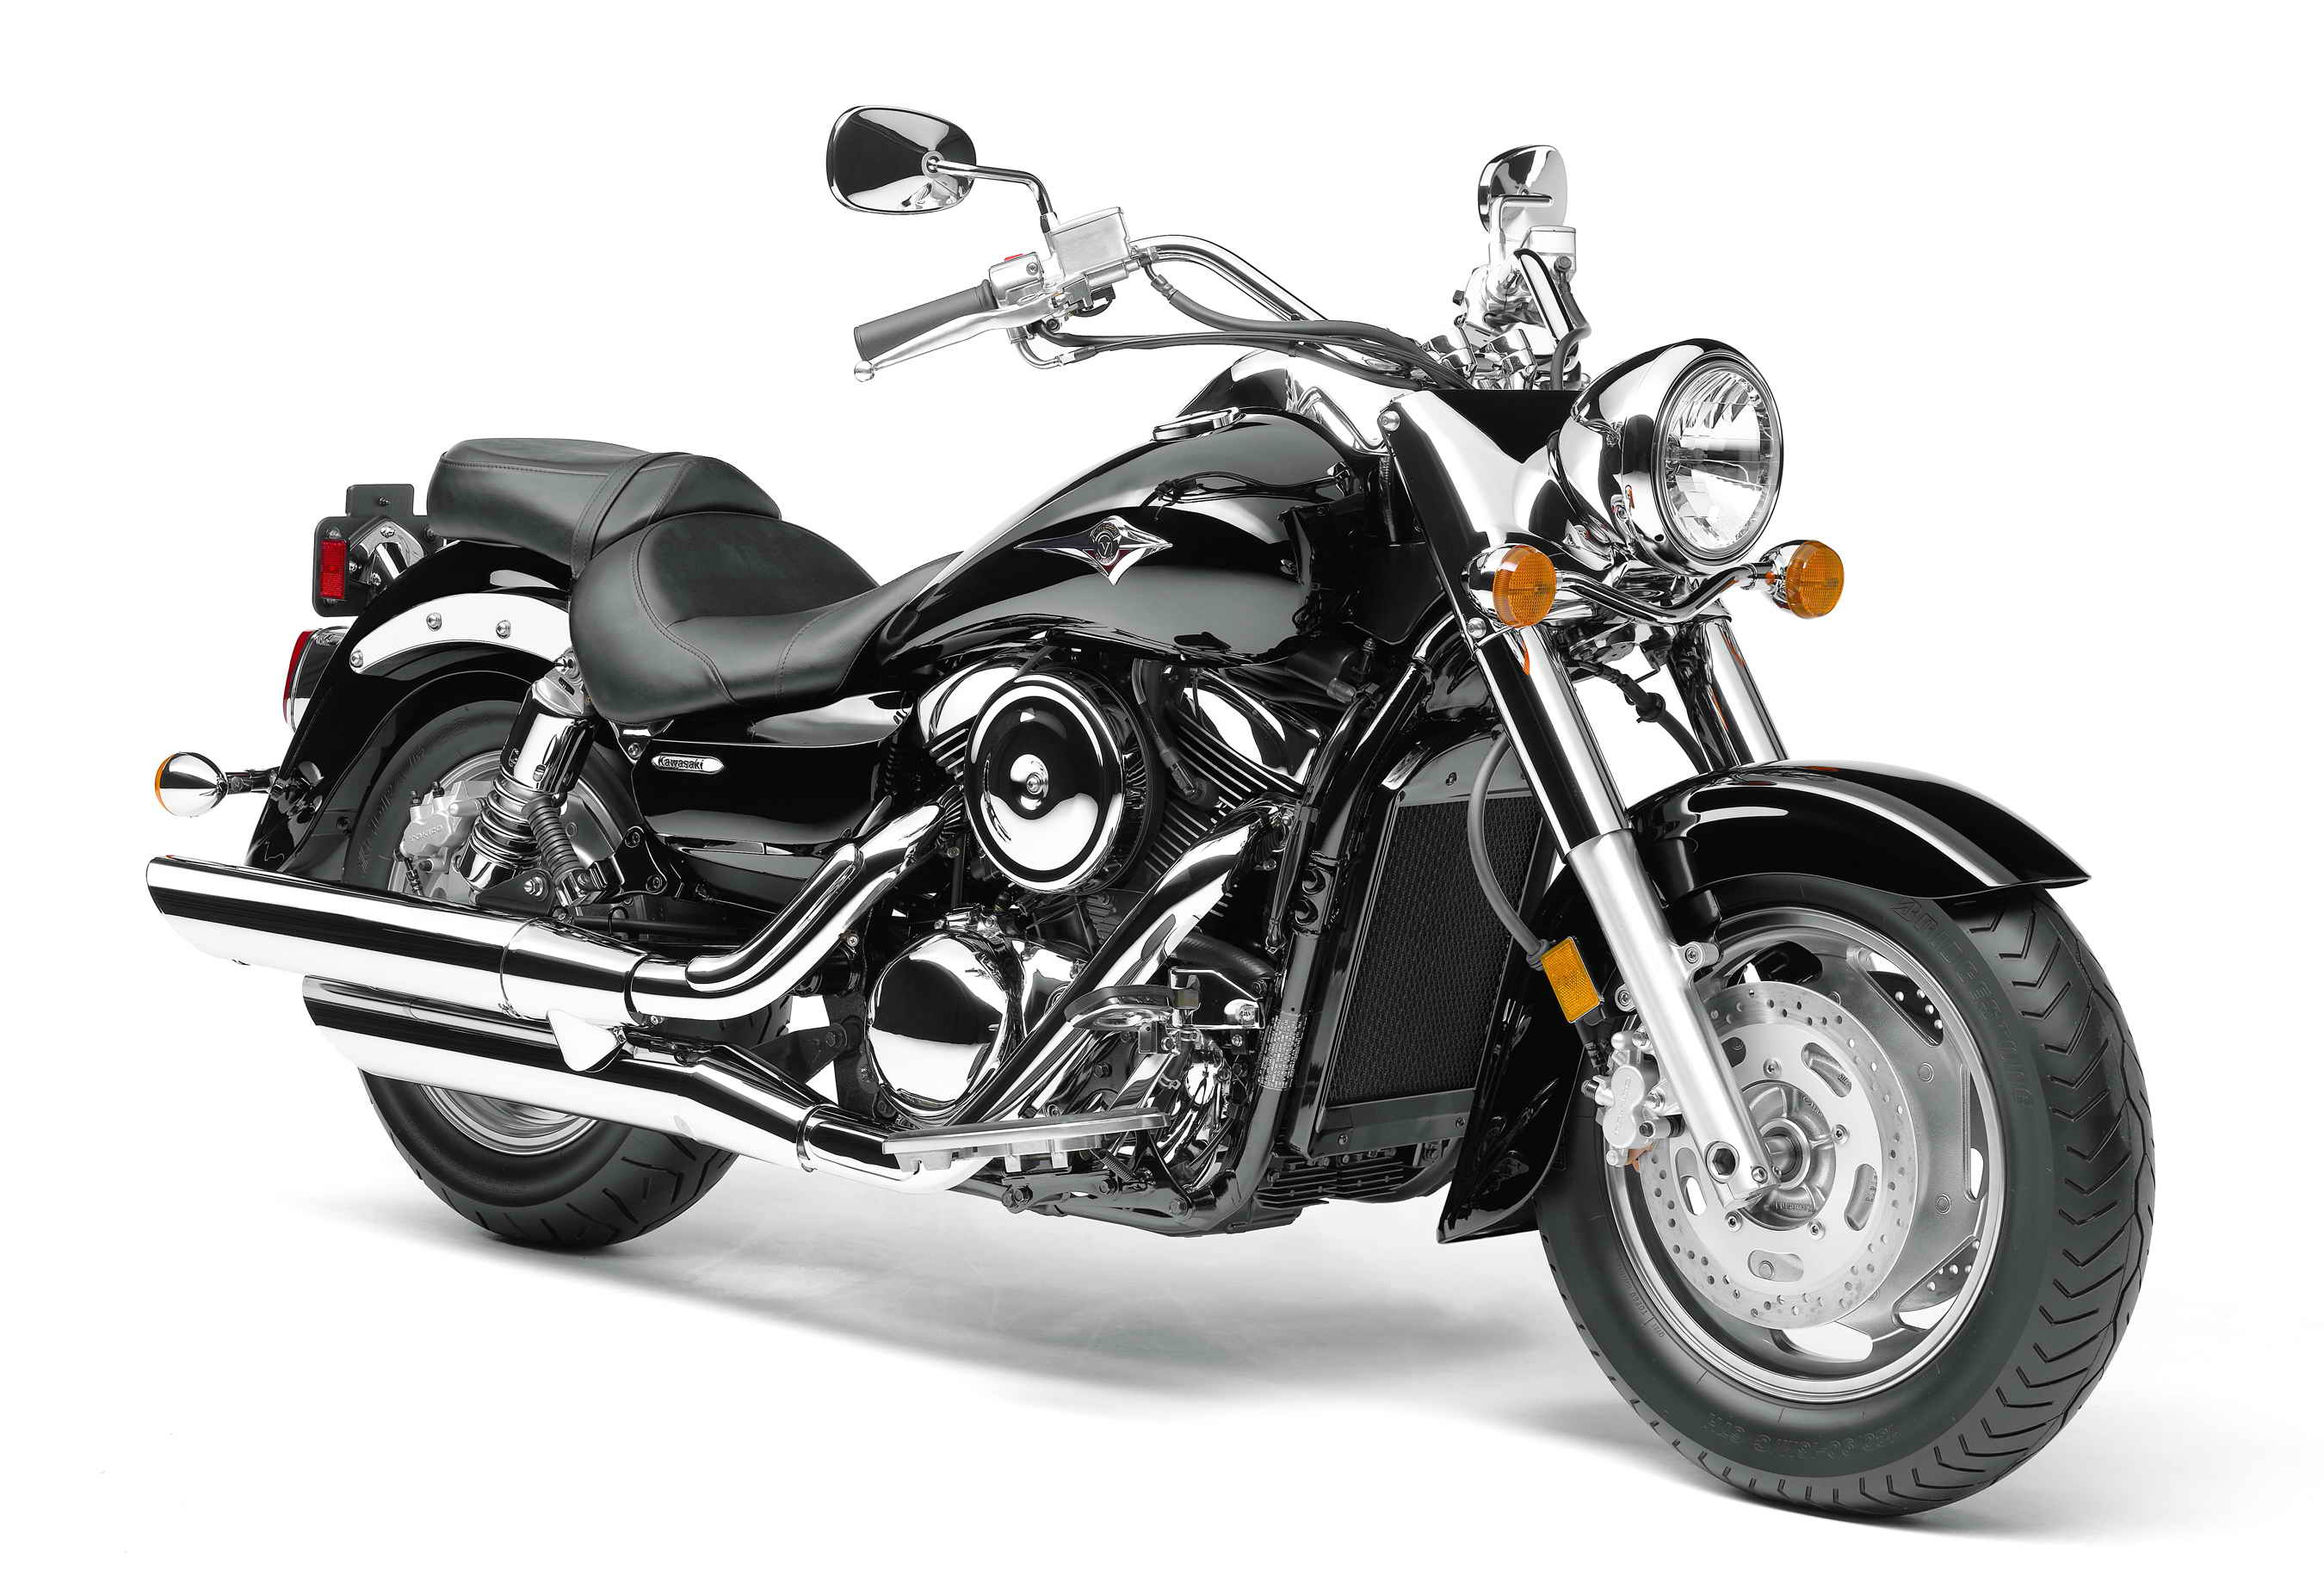 2007 Kawasaki Vulcan 1600 Clic | Top Speed